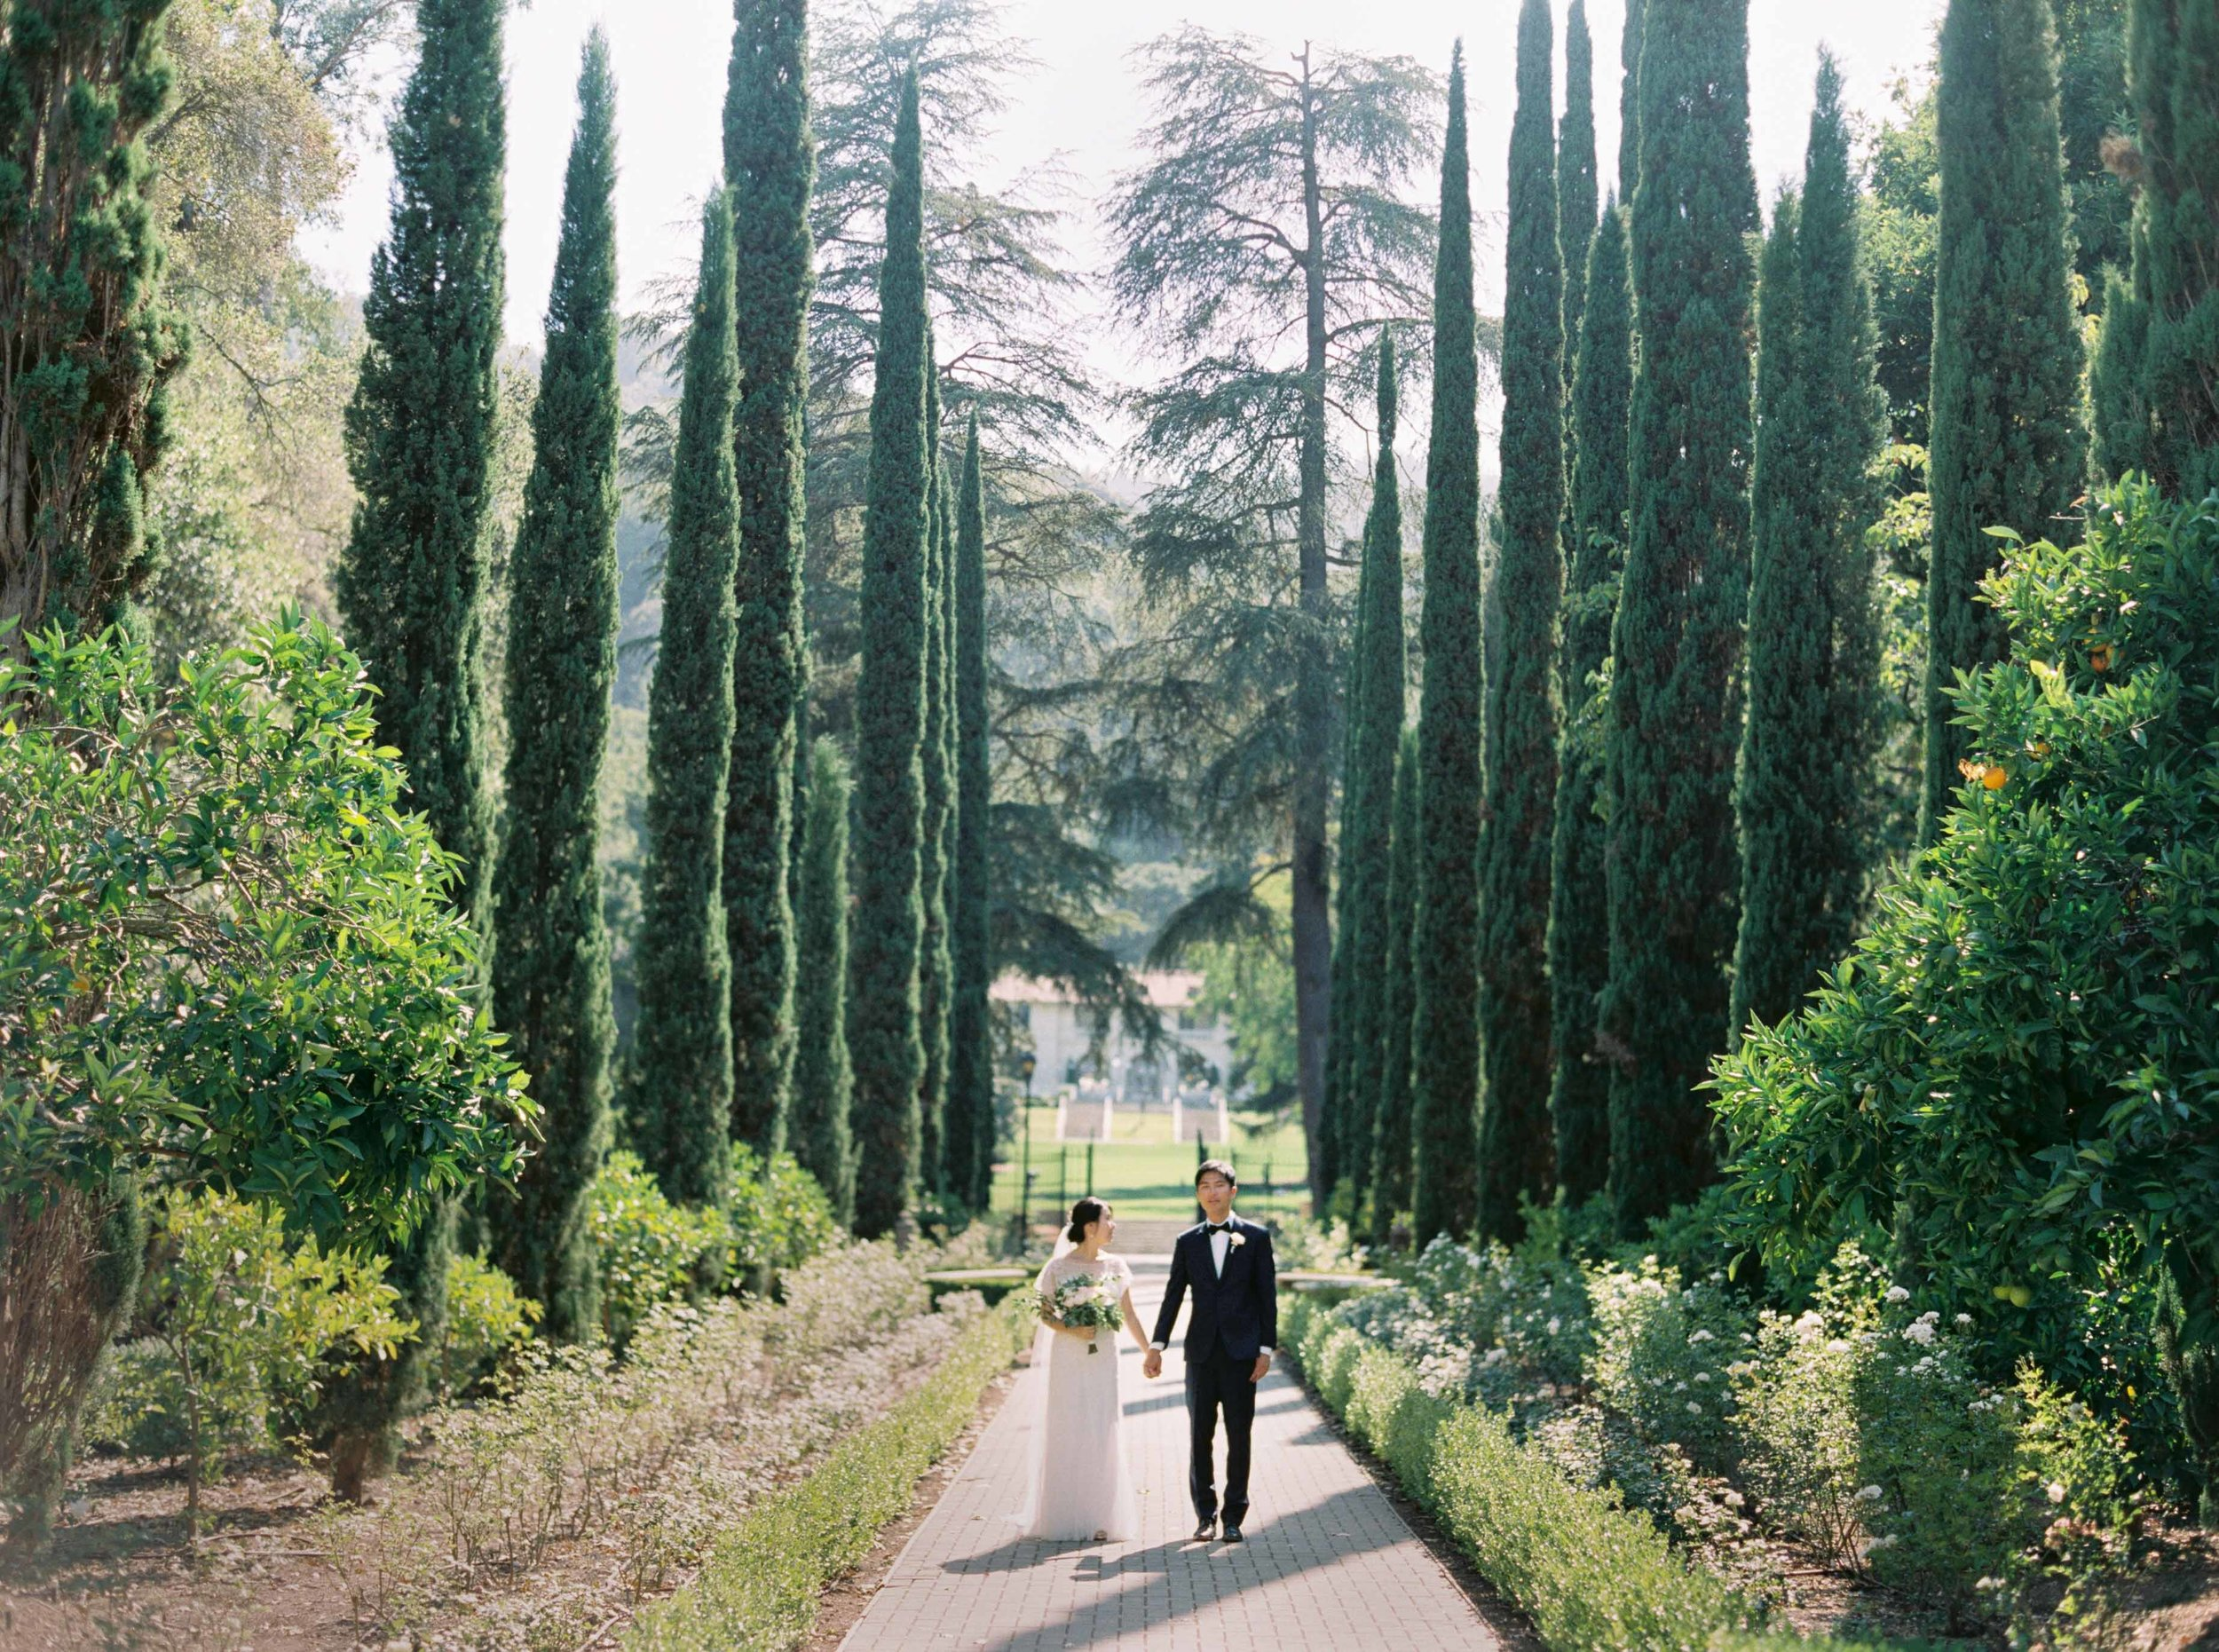 Villa_Montalvo_Wedding_Photographer_Videographer_San_Francisco082.jpg